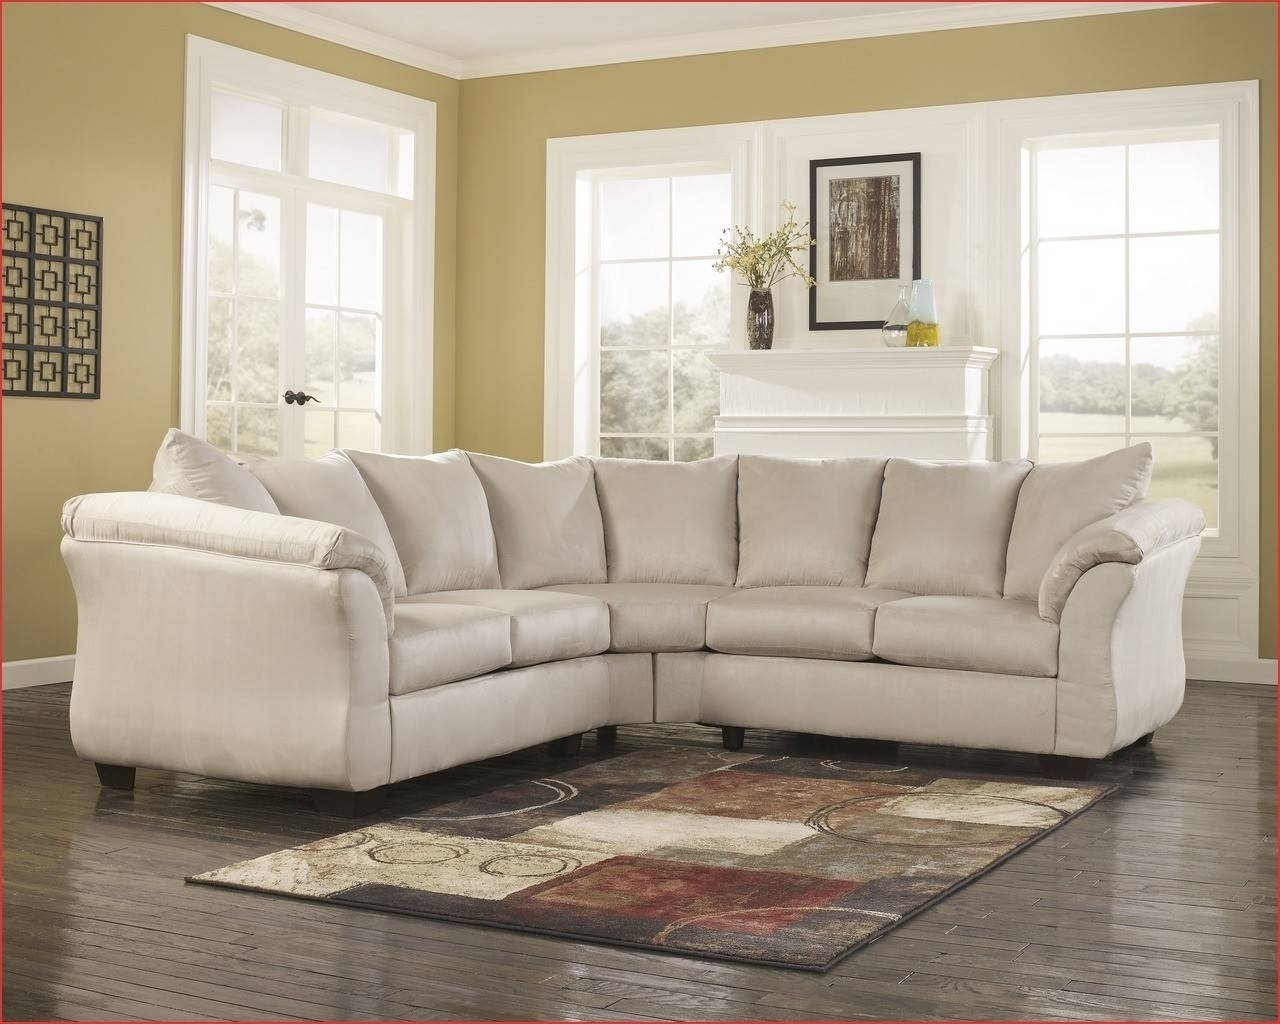 Collection Sectional Sofas Rochester Ny – Mediasupload With Rochester Ny Sectional Sofas (Image 5 of 10)